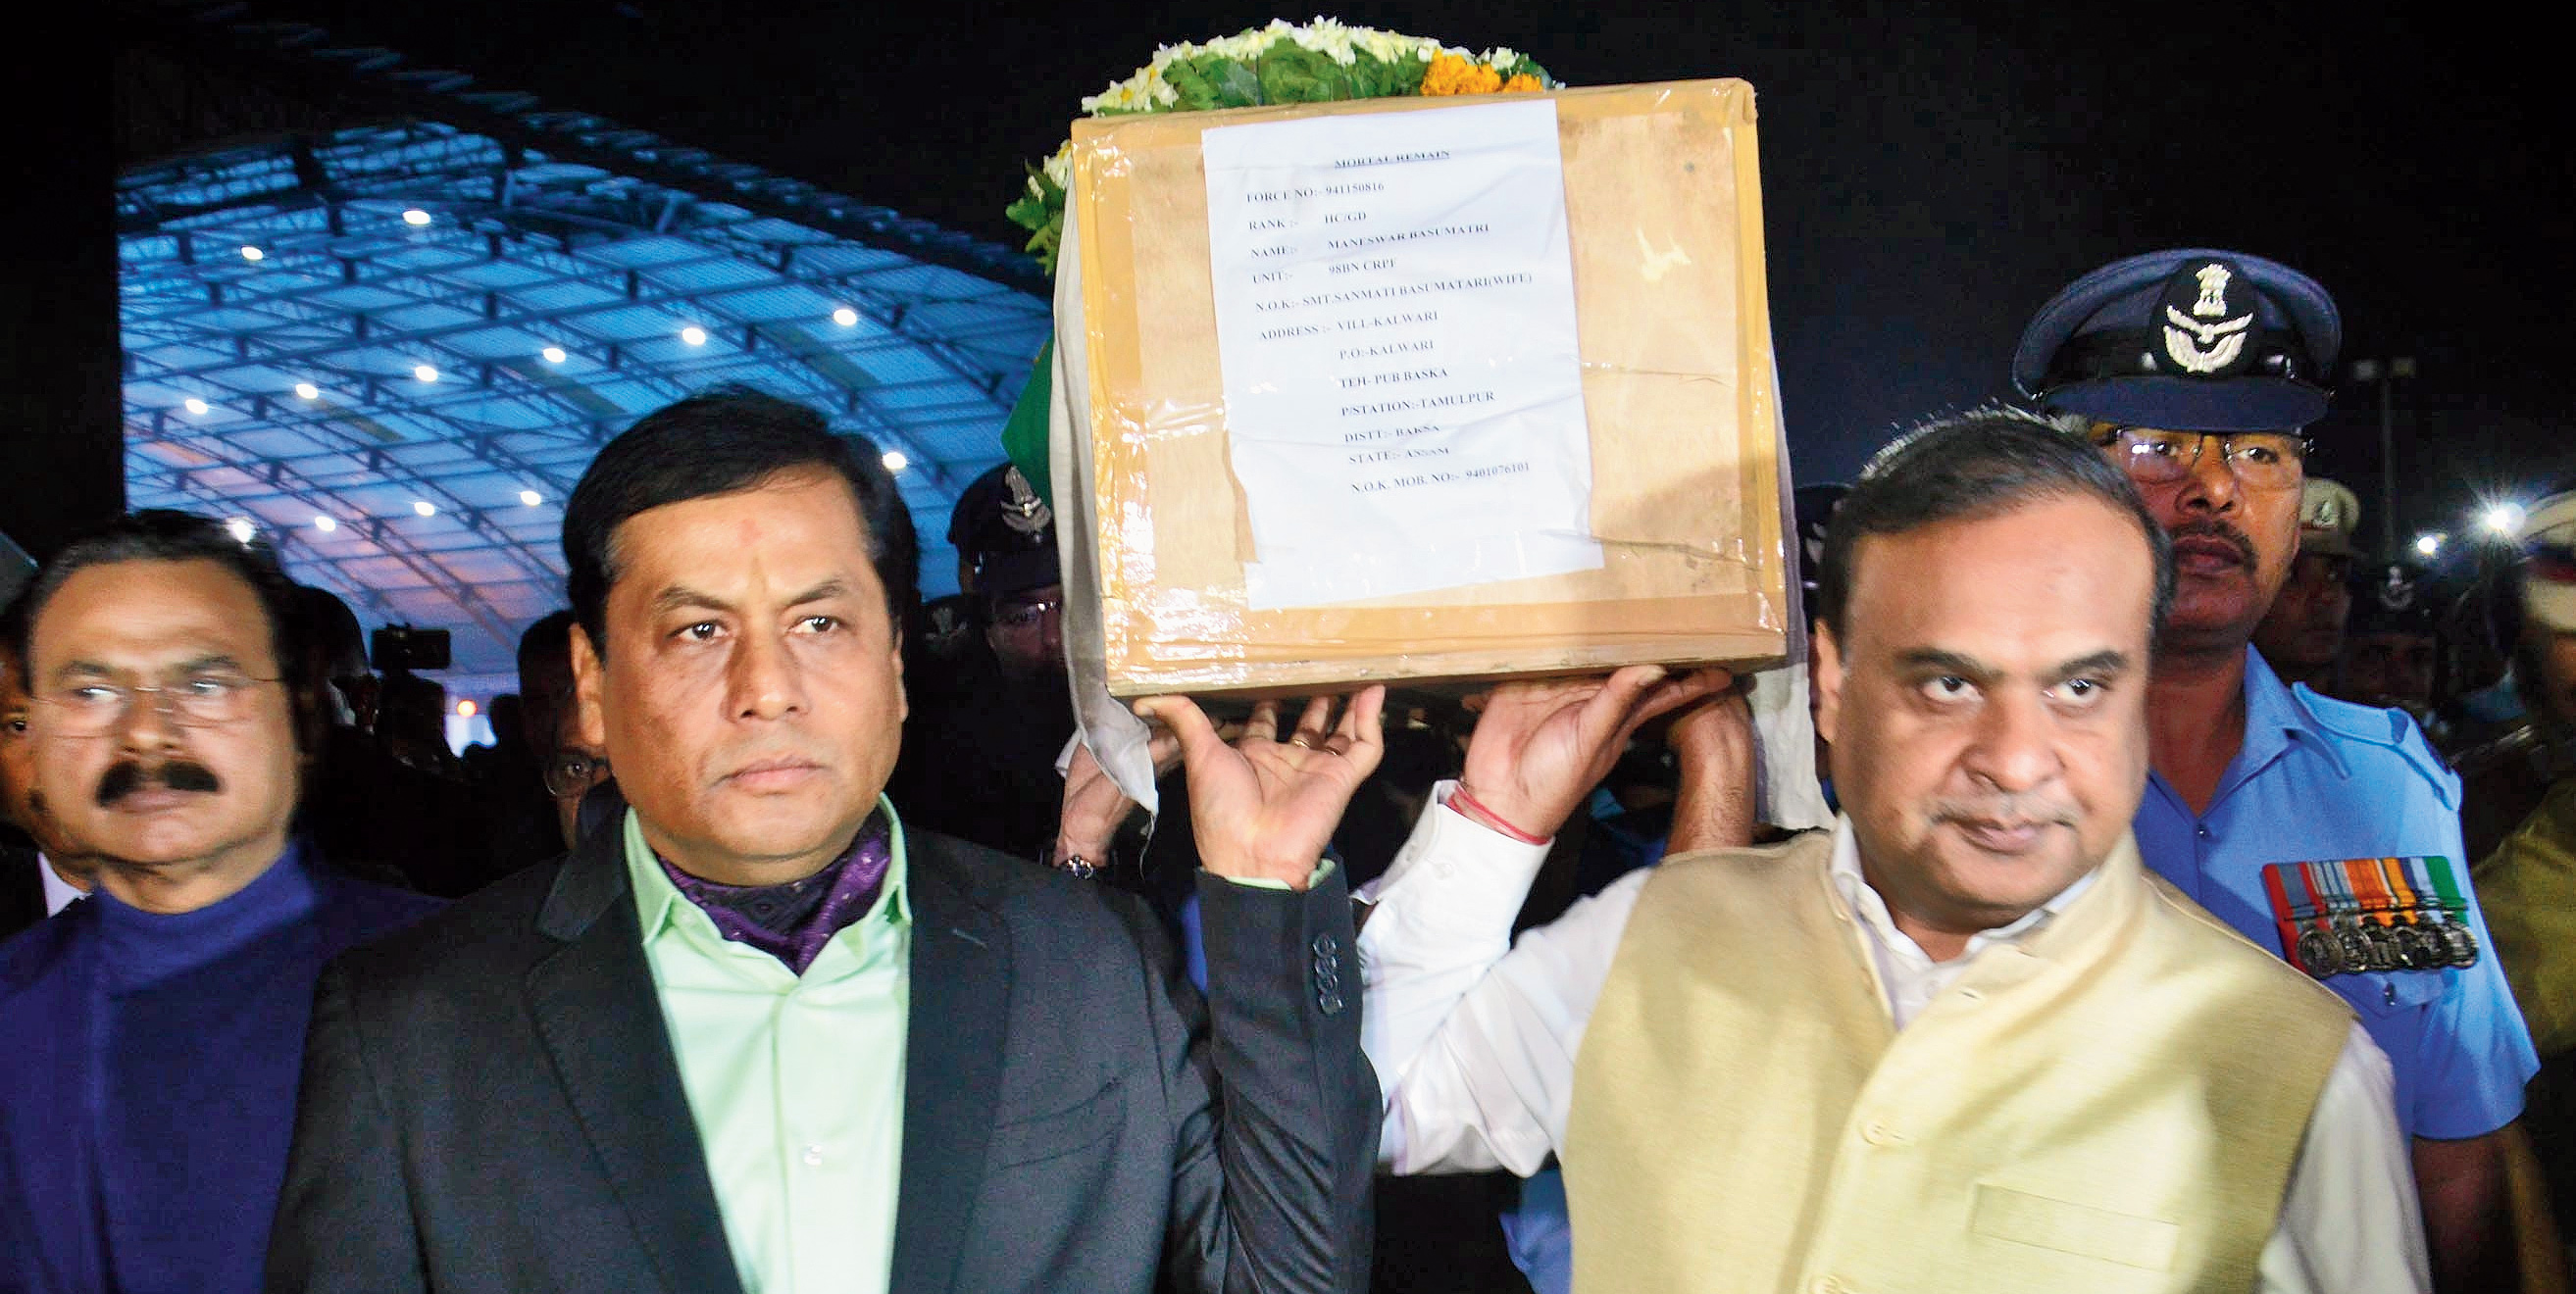 Assam chief minister Sarbananda Sonowal and finance minister Himanta Biswa Sarma help carry the coffin of Maneswar Basumatary at LGBI airport in Guwahati on Saturday.